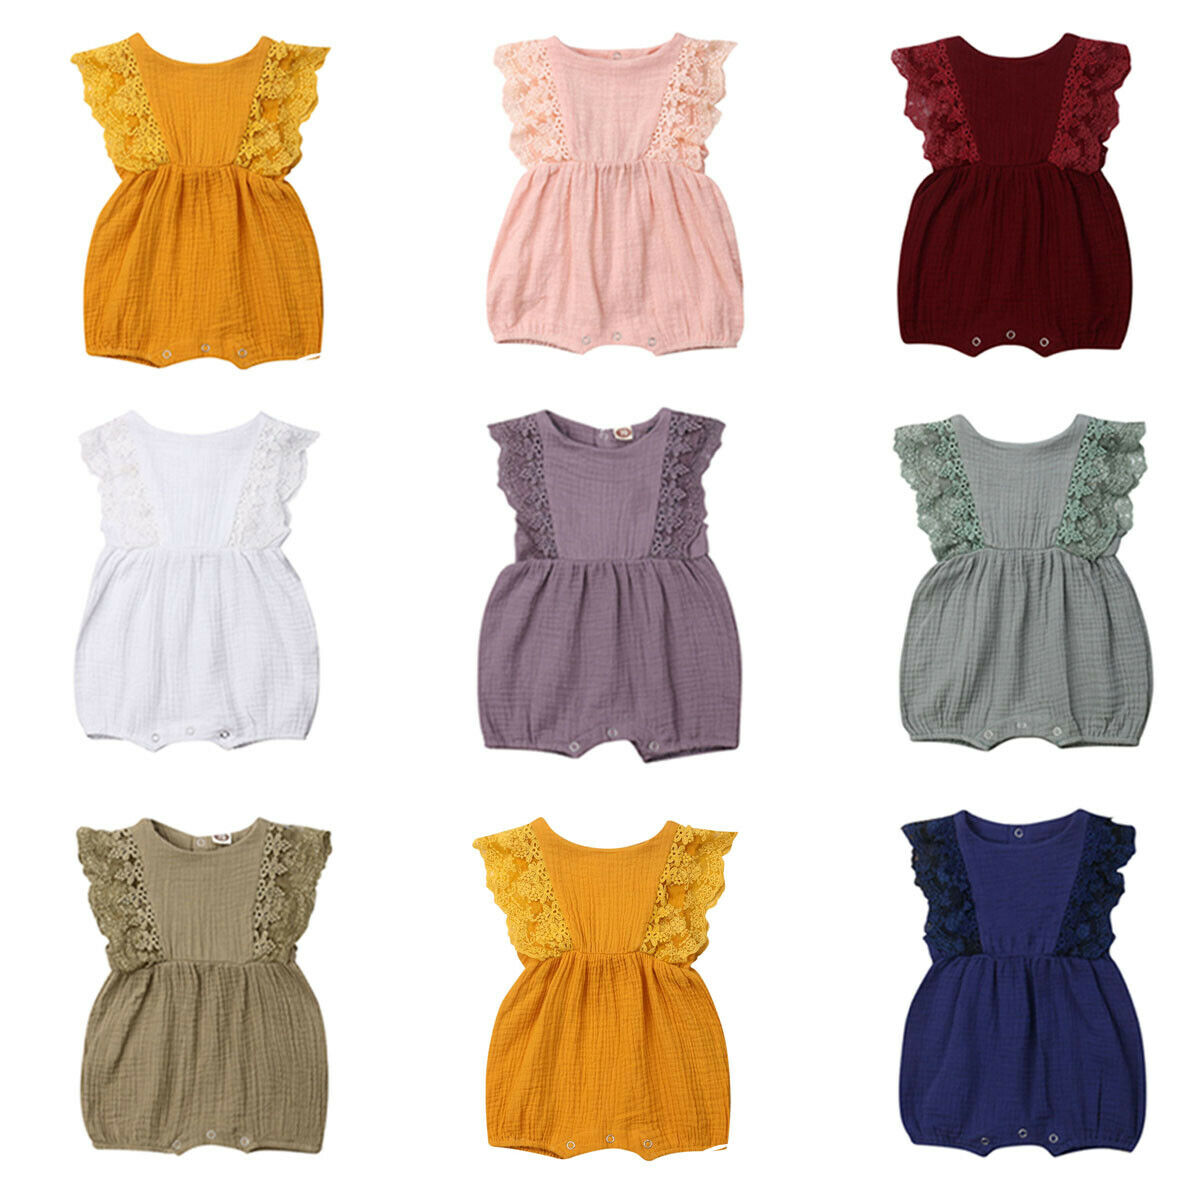 Newborn Baby Girl Clothes Lace Sleeveless Solid Color Ruffle Bodysuit Jumosuit Headband 2pcs Outfit Clothes